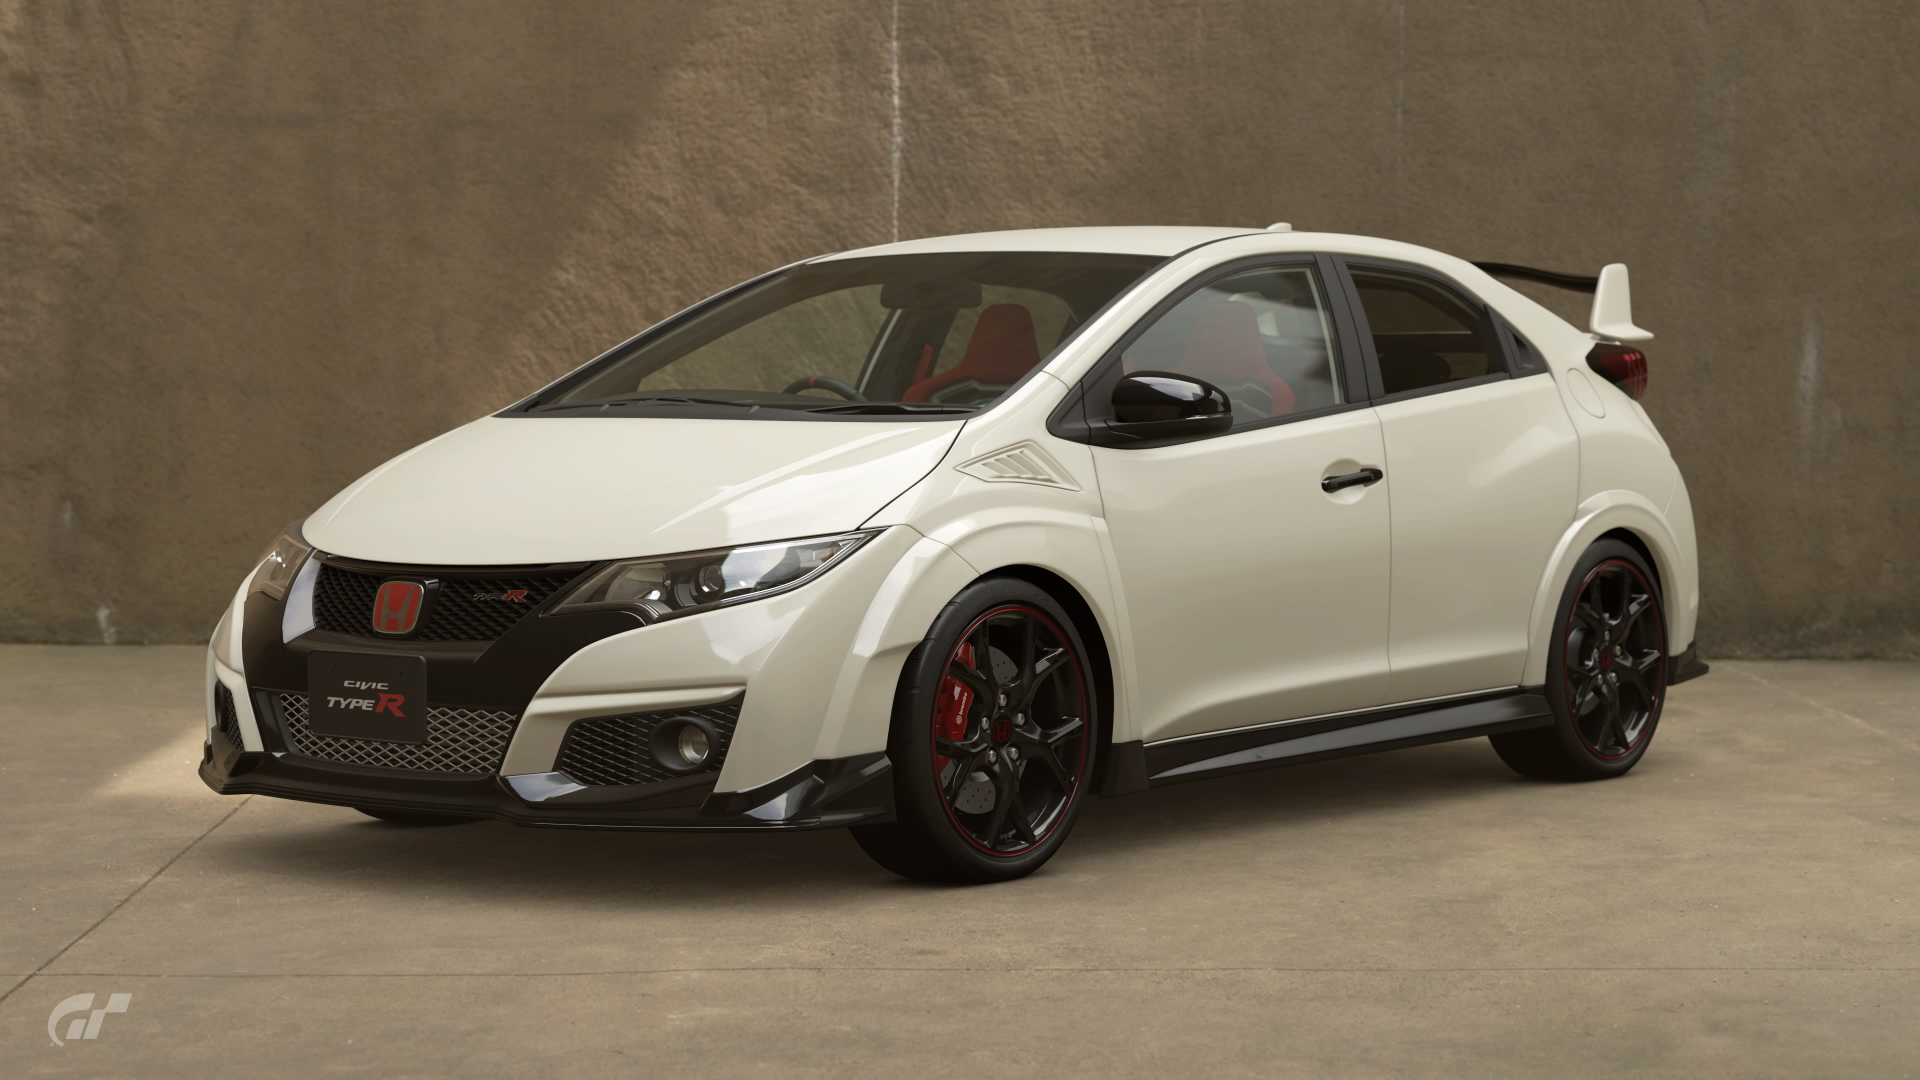 honda civic type r fk2 39 15 gran turismo wiki fandom powered by wikia. Black Bedroom Furniture Sets. Home Design Ideas